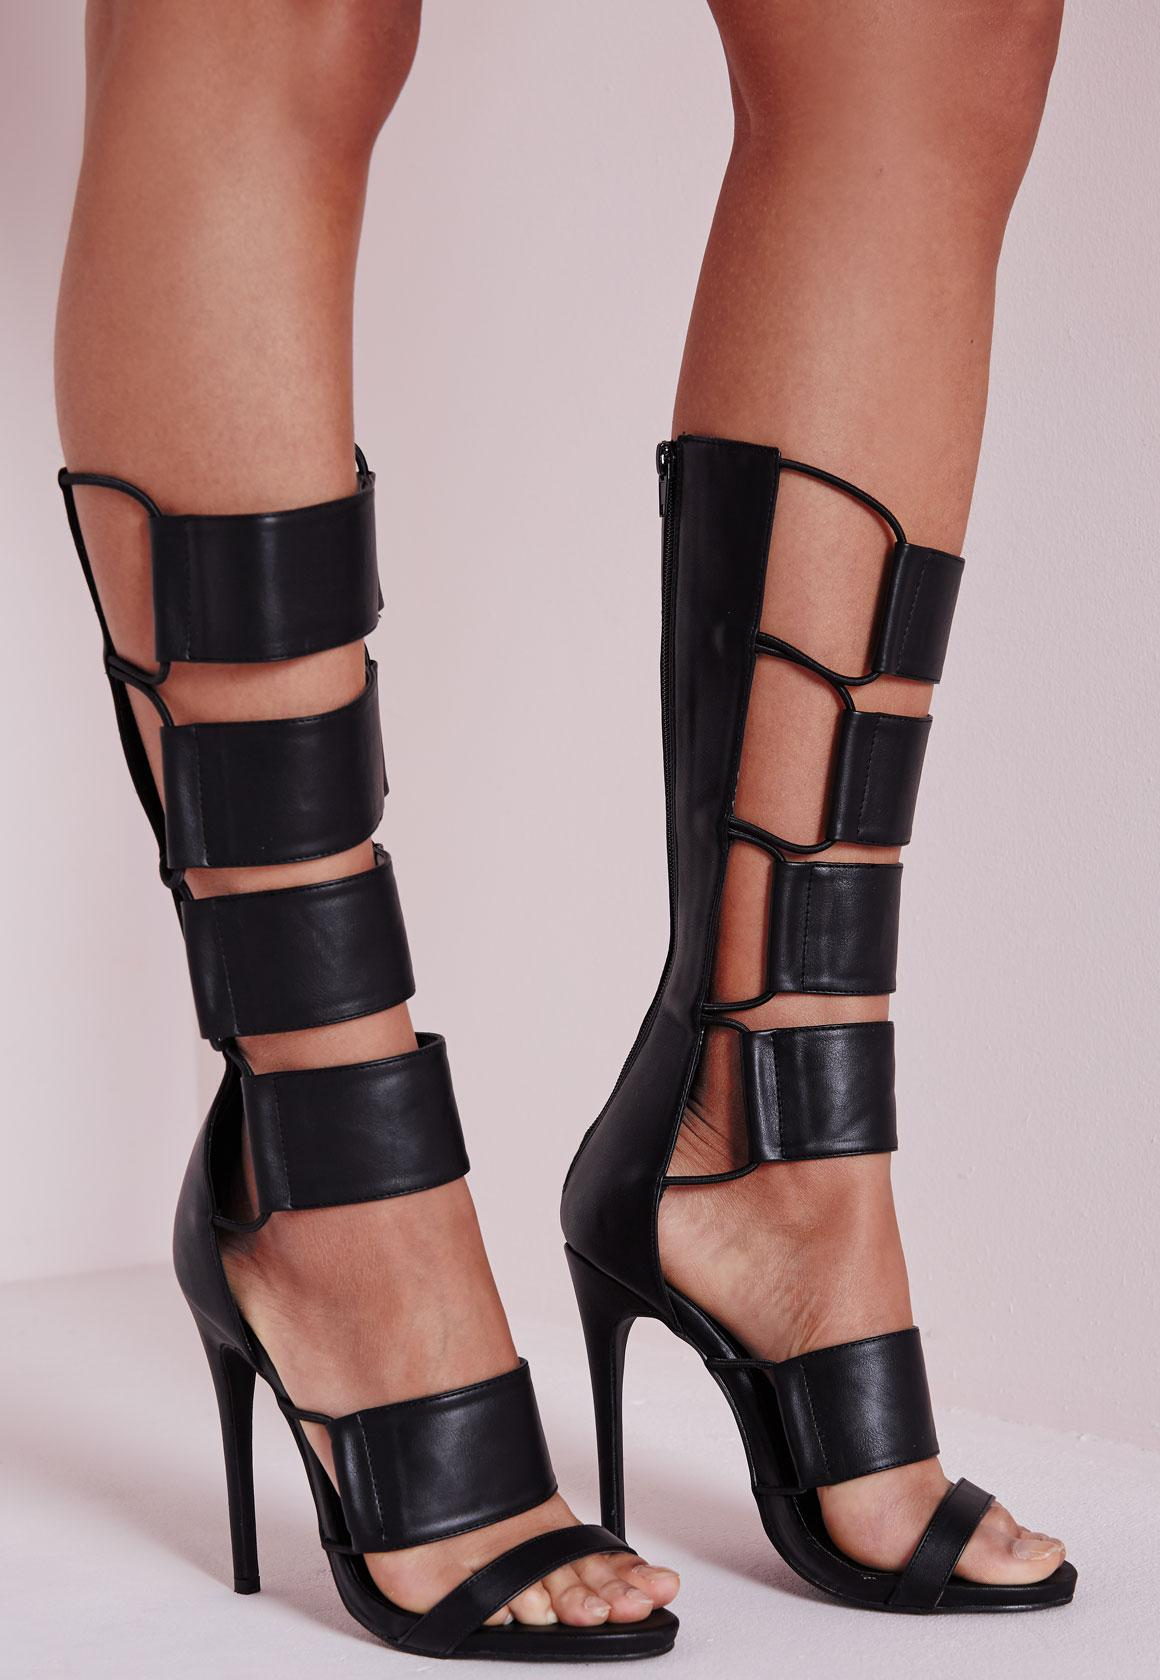 Elastic Detail Gladiator Heeled Sandals Black - Shoes - High Heels ...